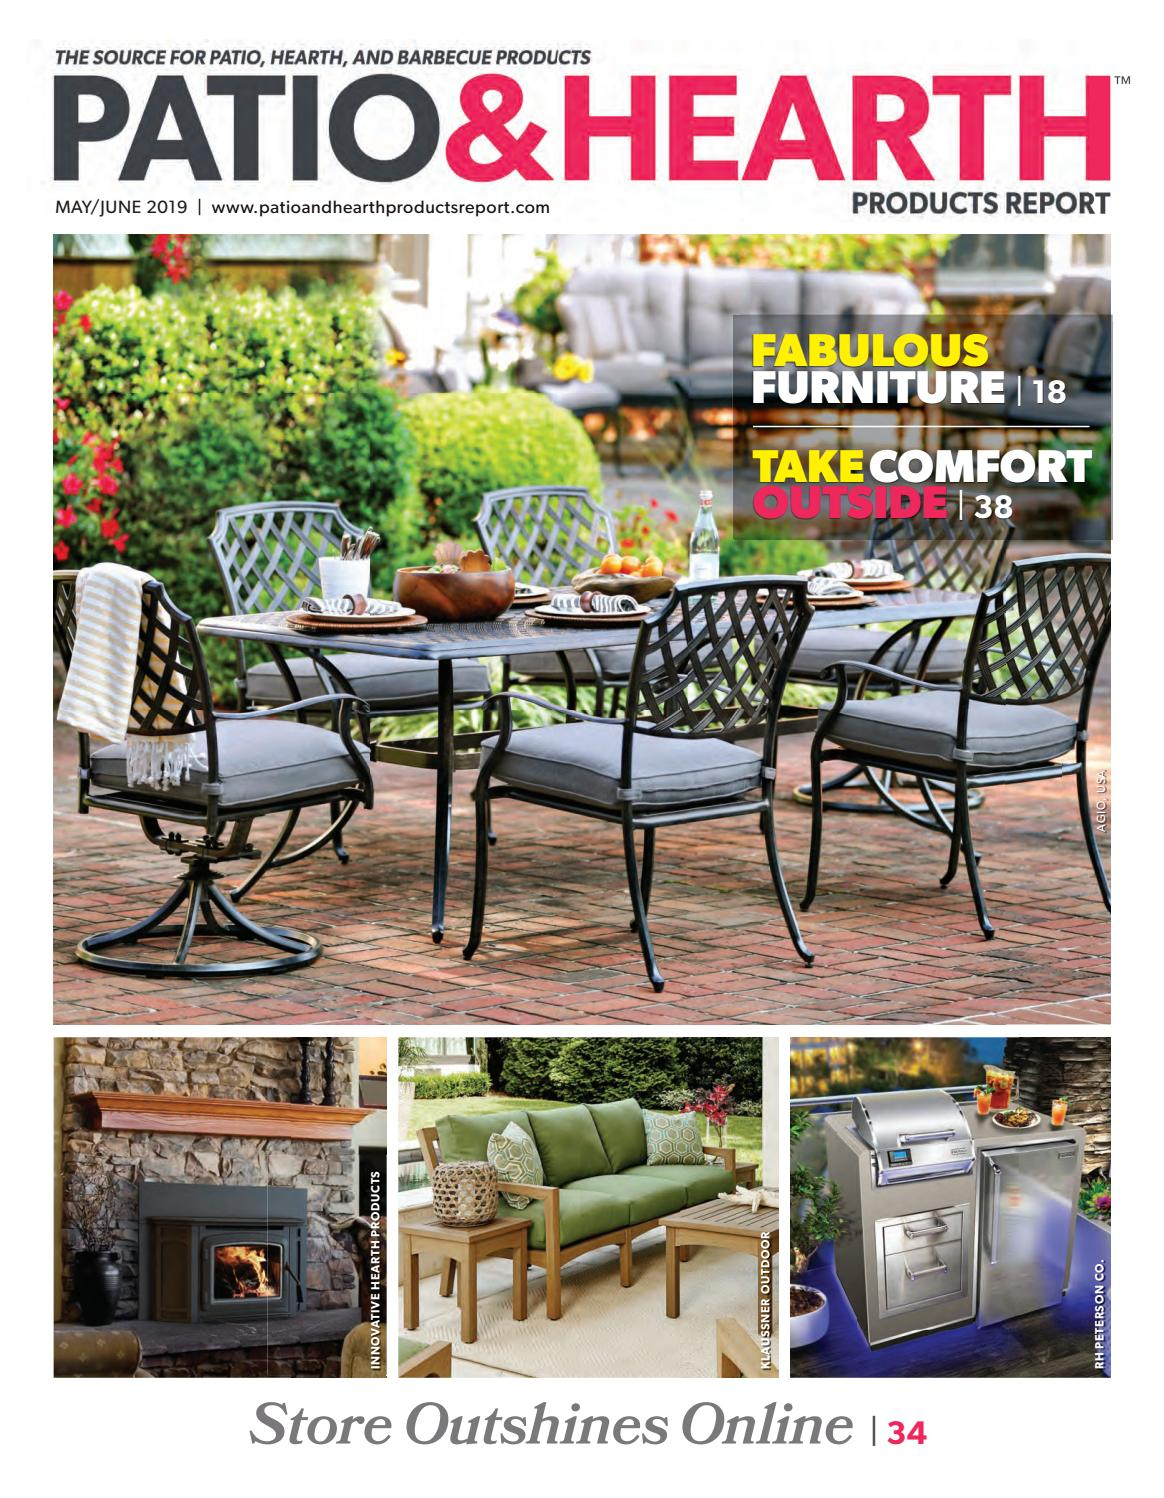 Patio Hearth Products Report May June